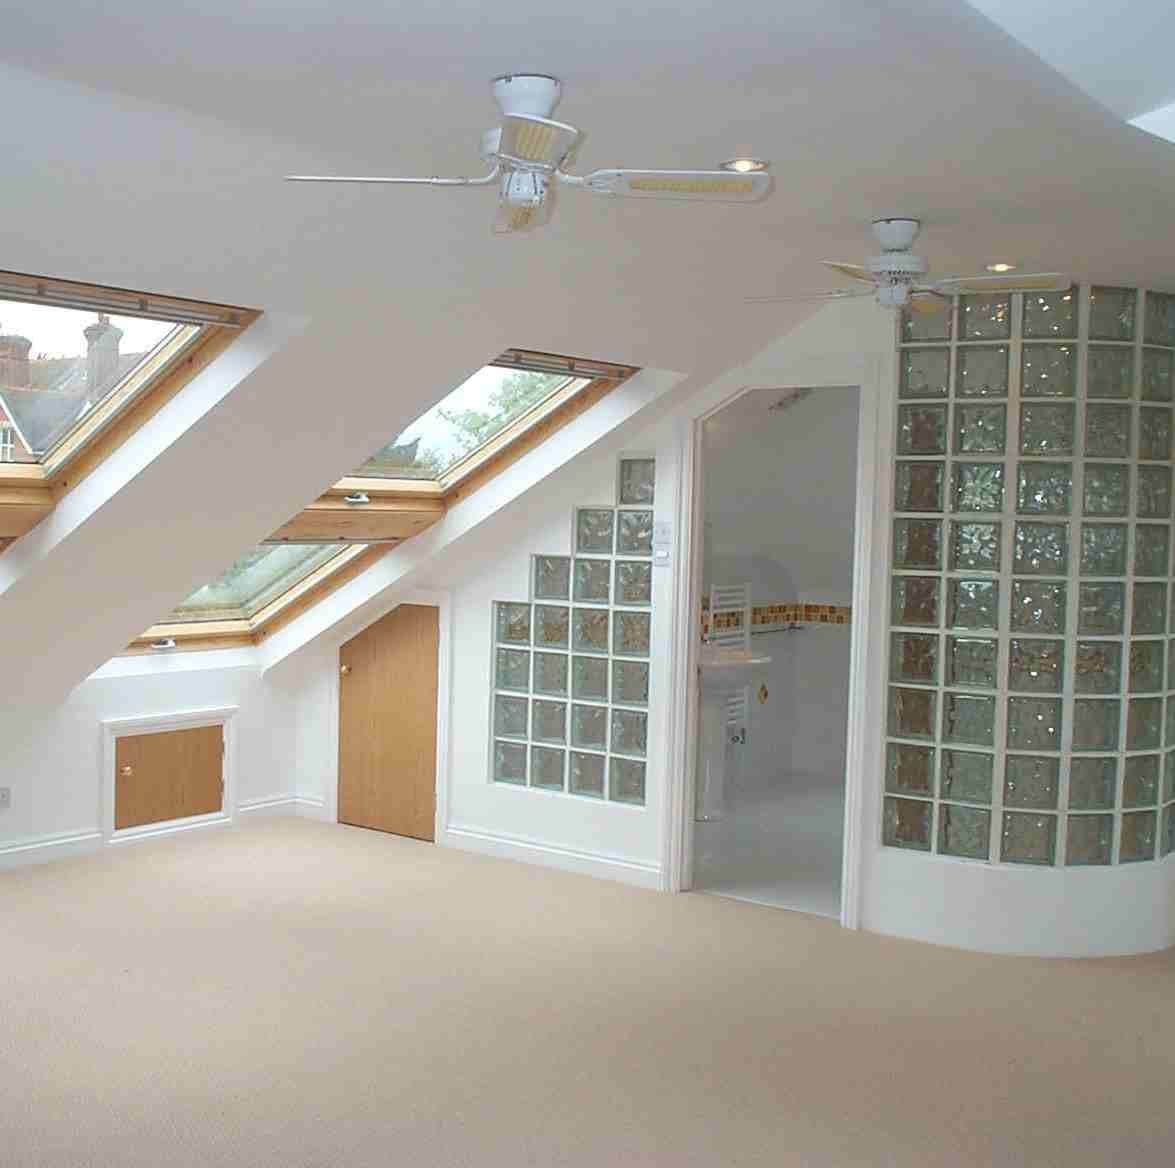 Best 25+ Loft conversion plans ideas on Pinterest | Garage conversions,  Making space and Shed floor